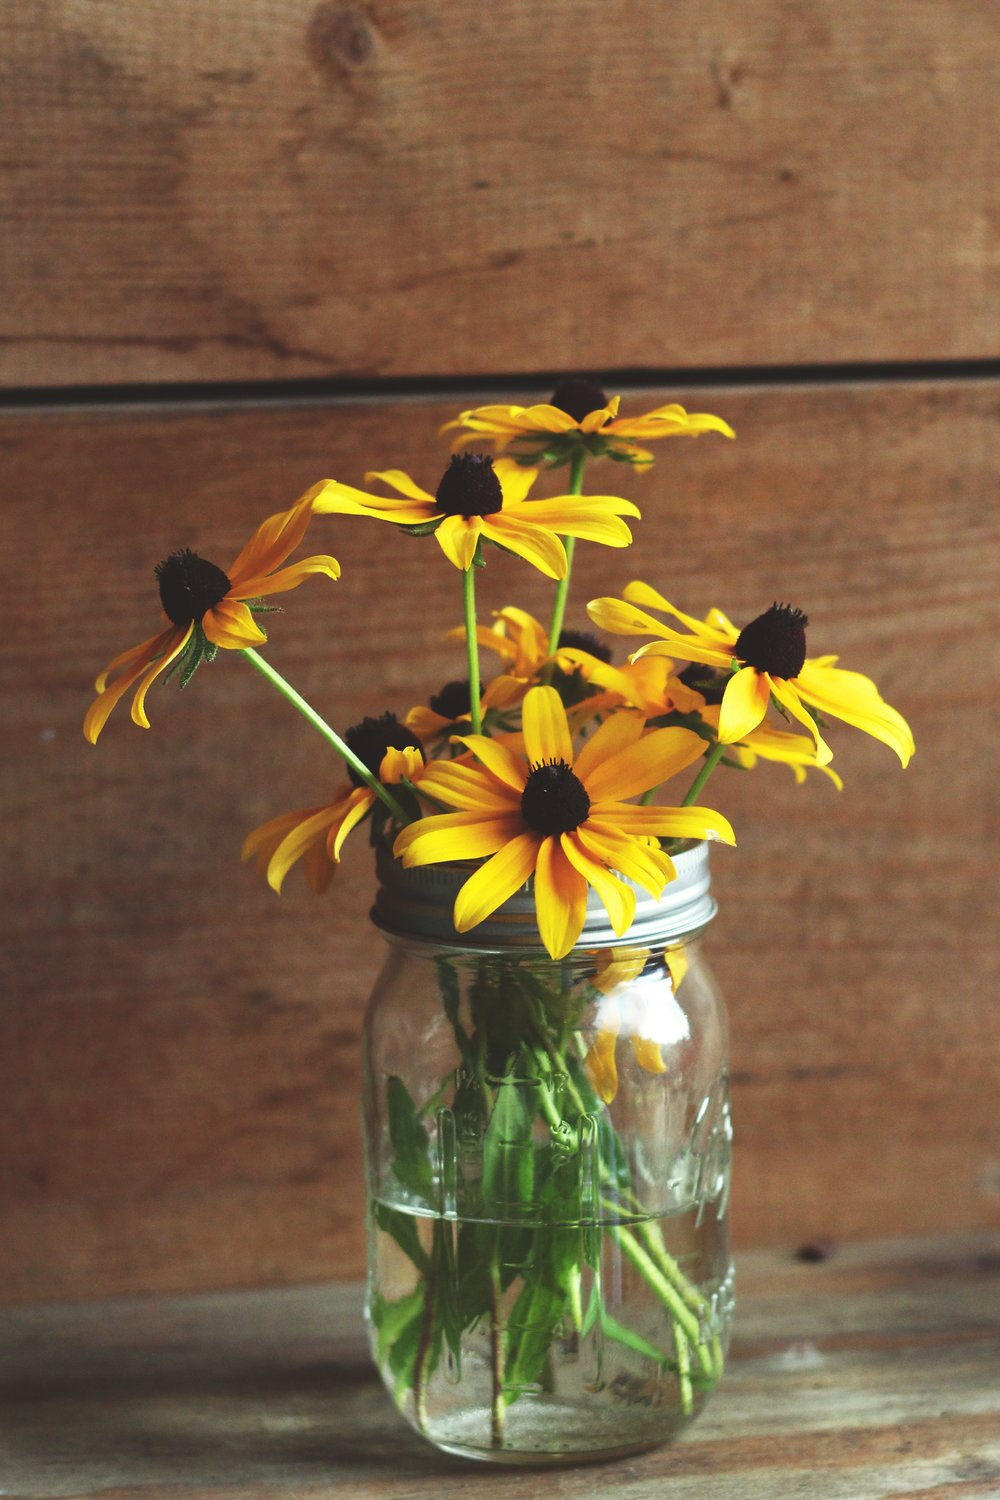 Some flowers placed in mason jars can add color and depth to your buffet stations.